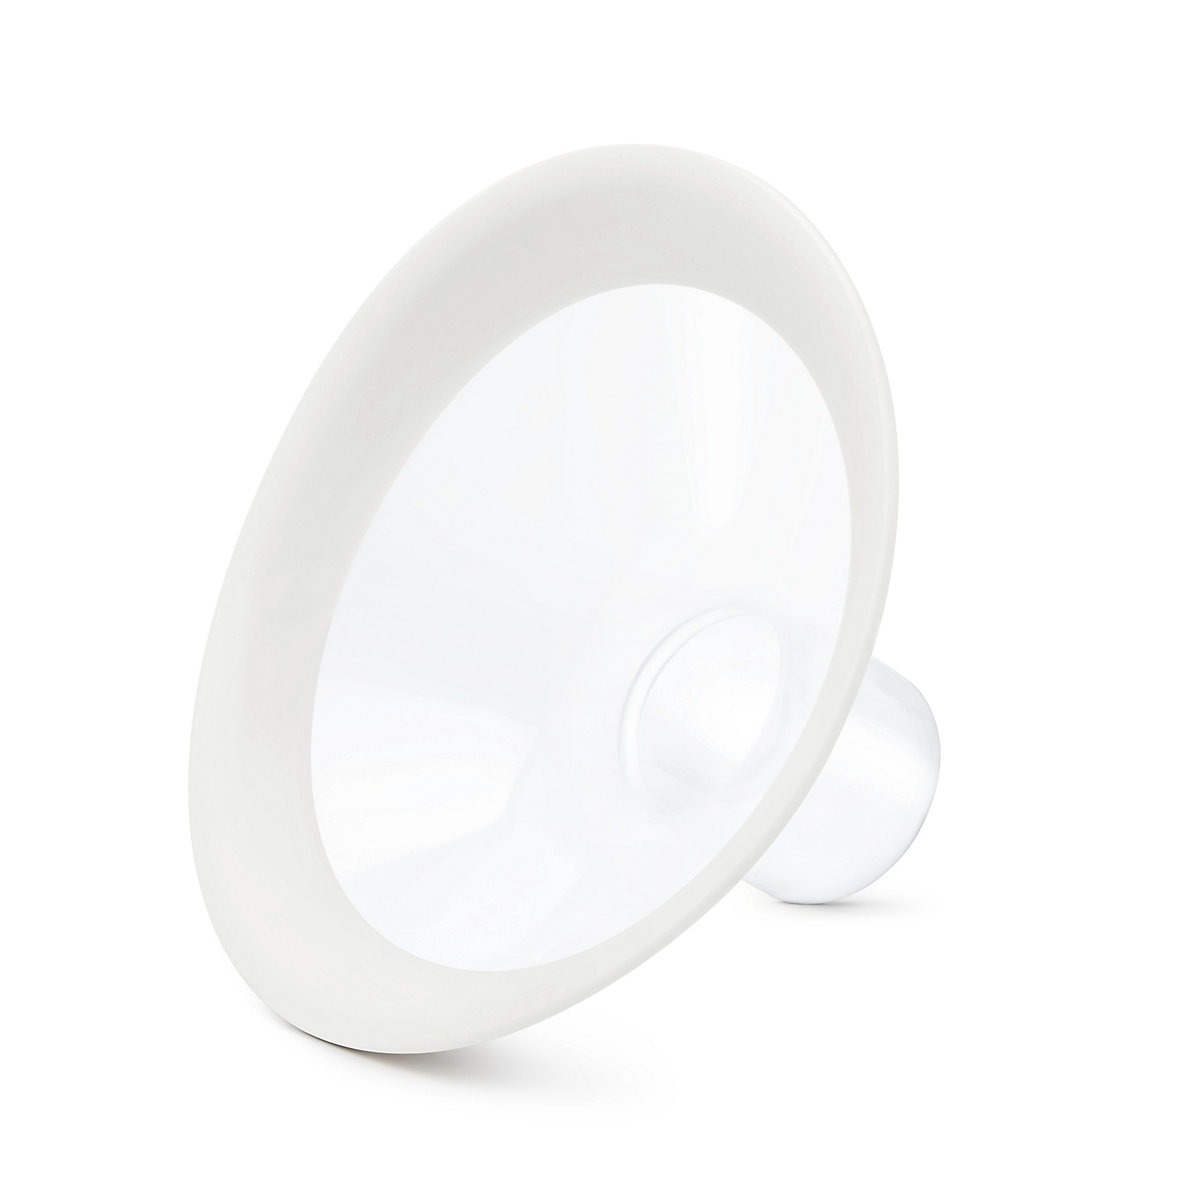 Medela personalfit flex breast shield - 21mm